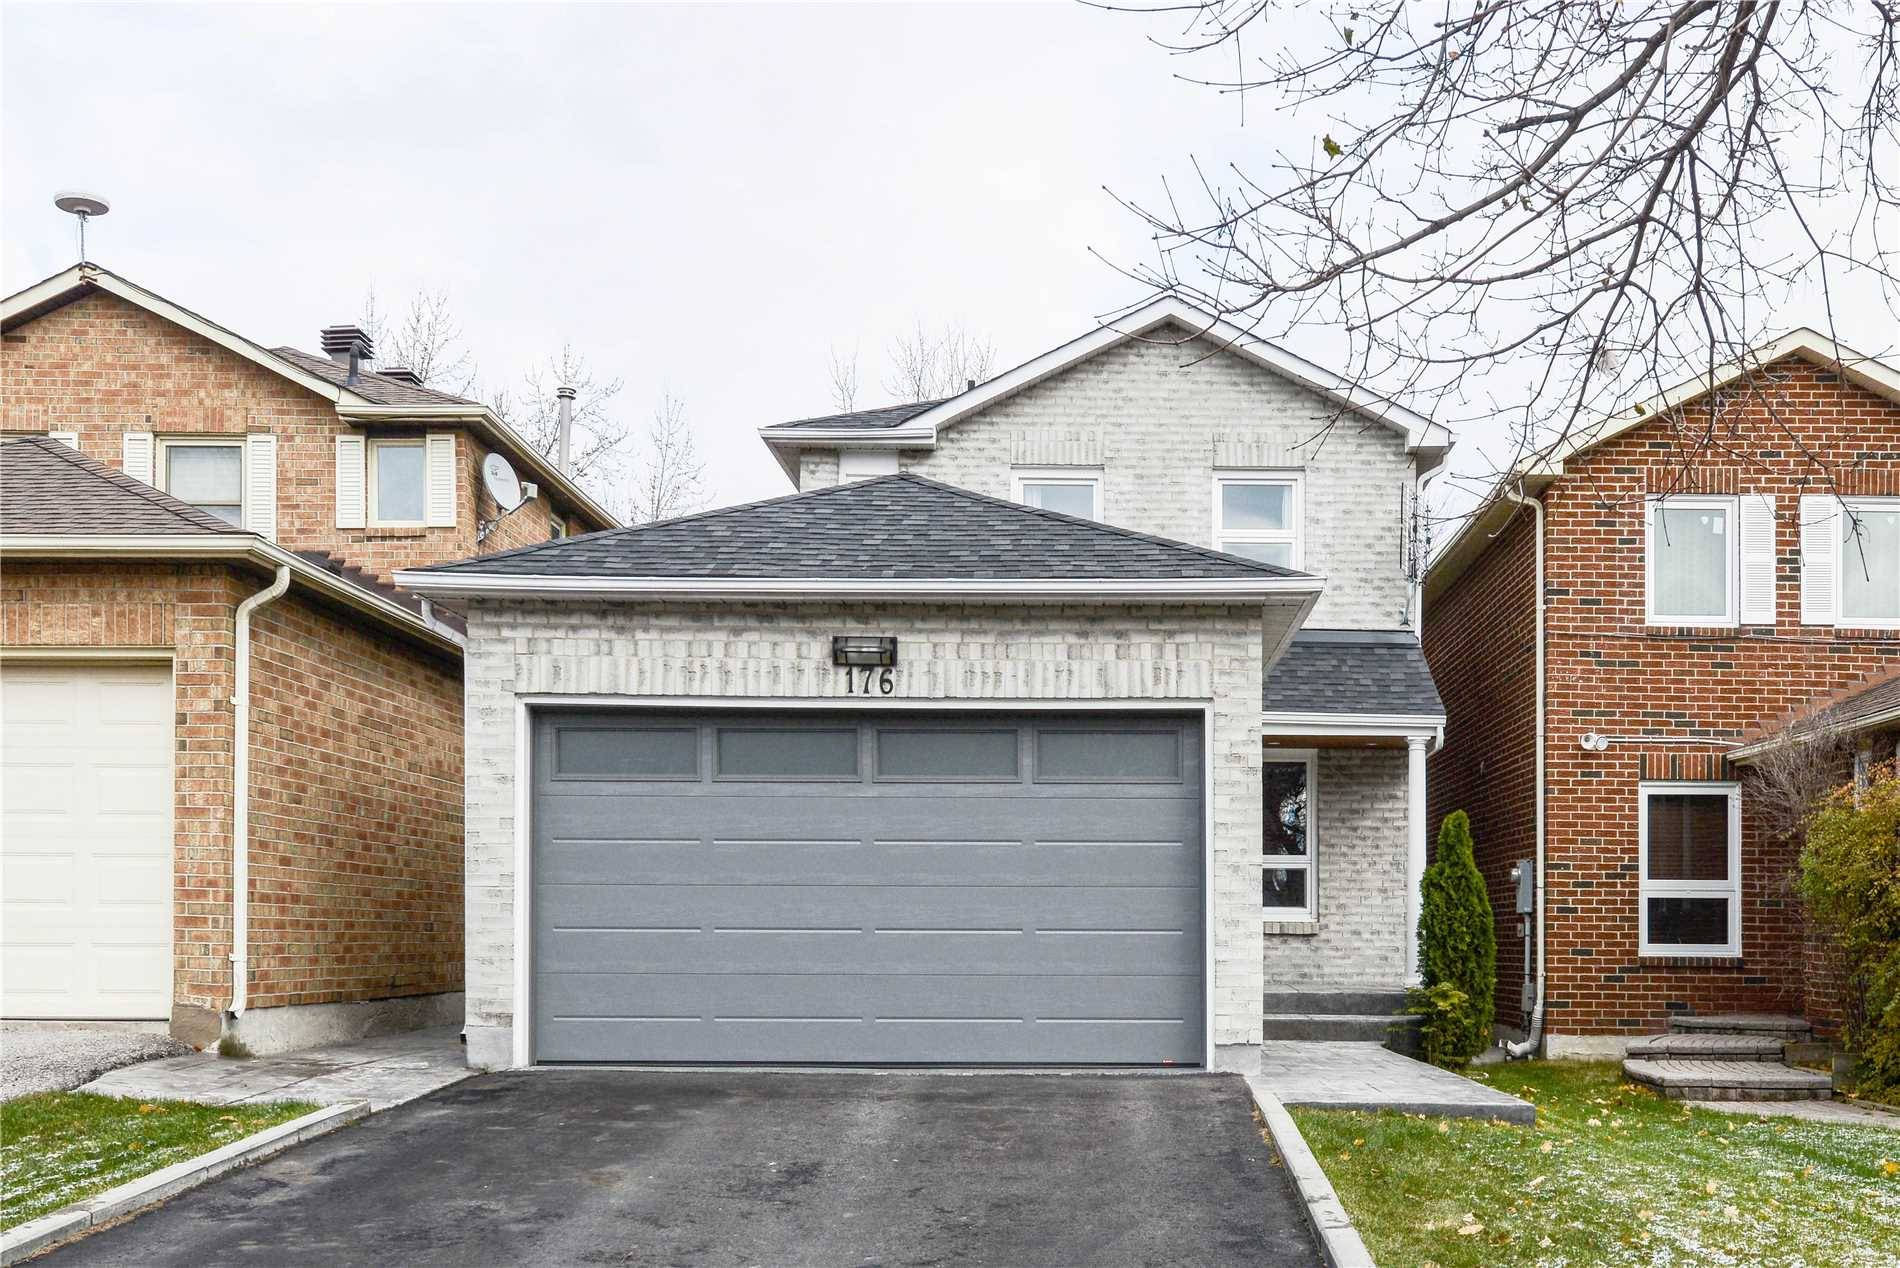 House for sale at 176 Don Head Village Blvd Richmond Hill Ontario - MLS: N4390989